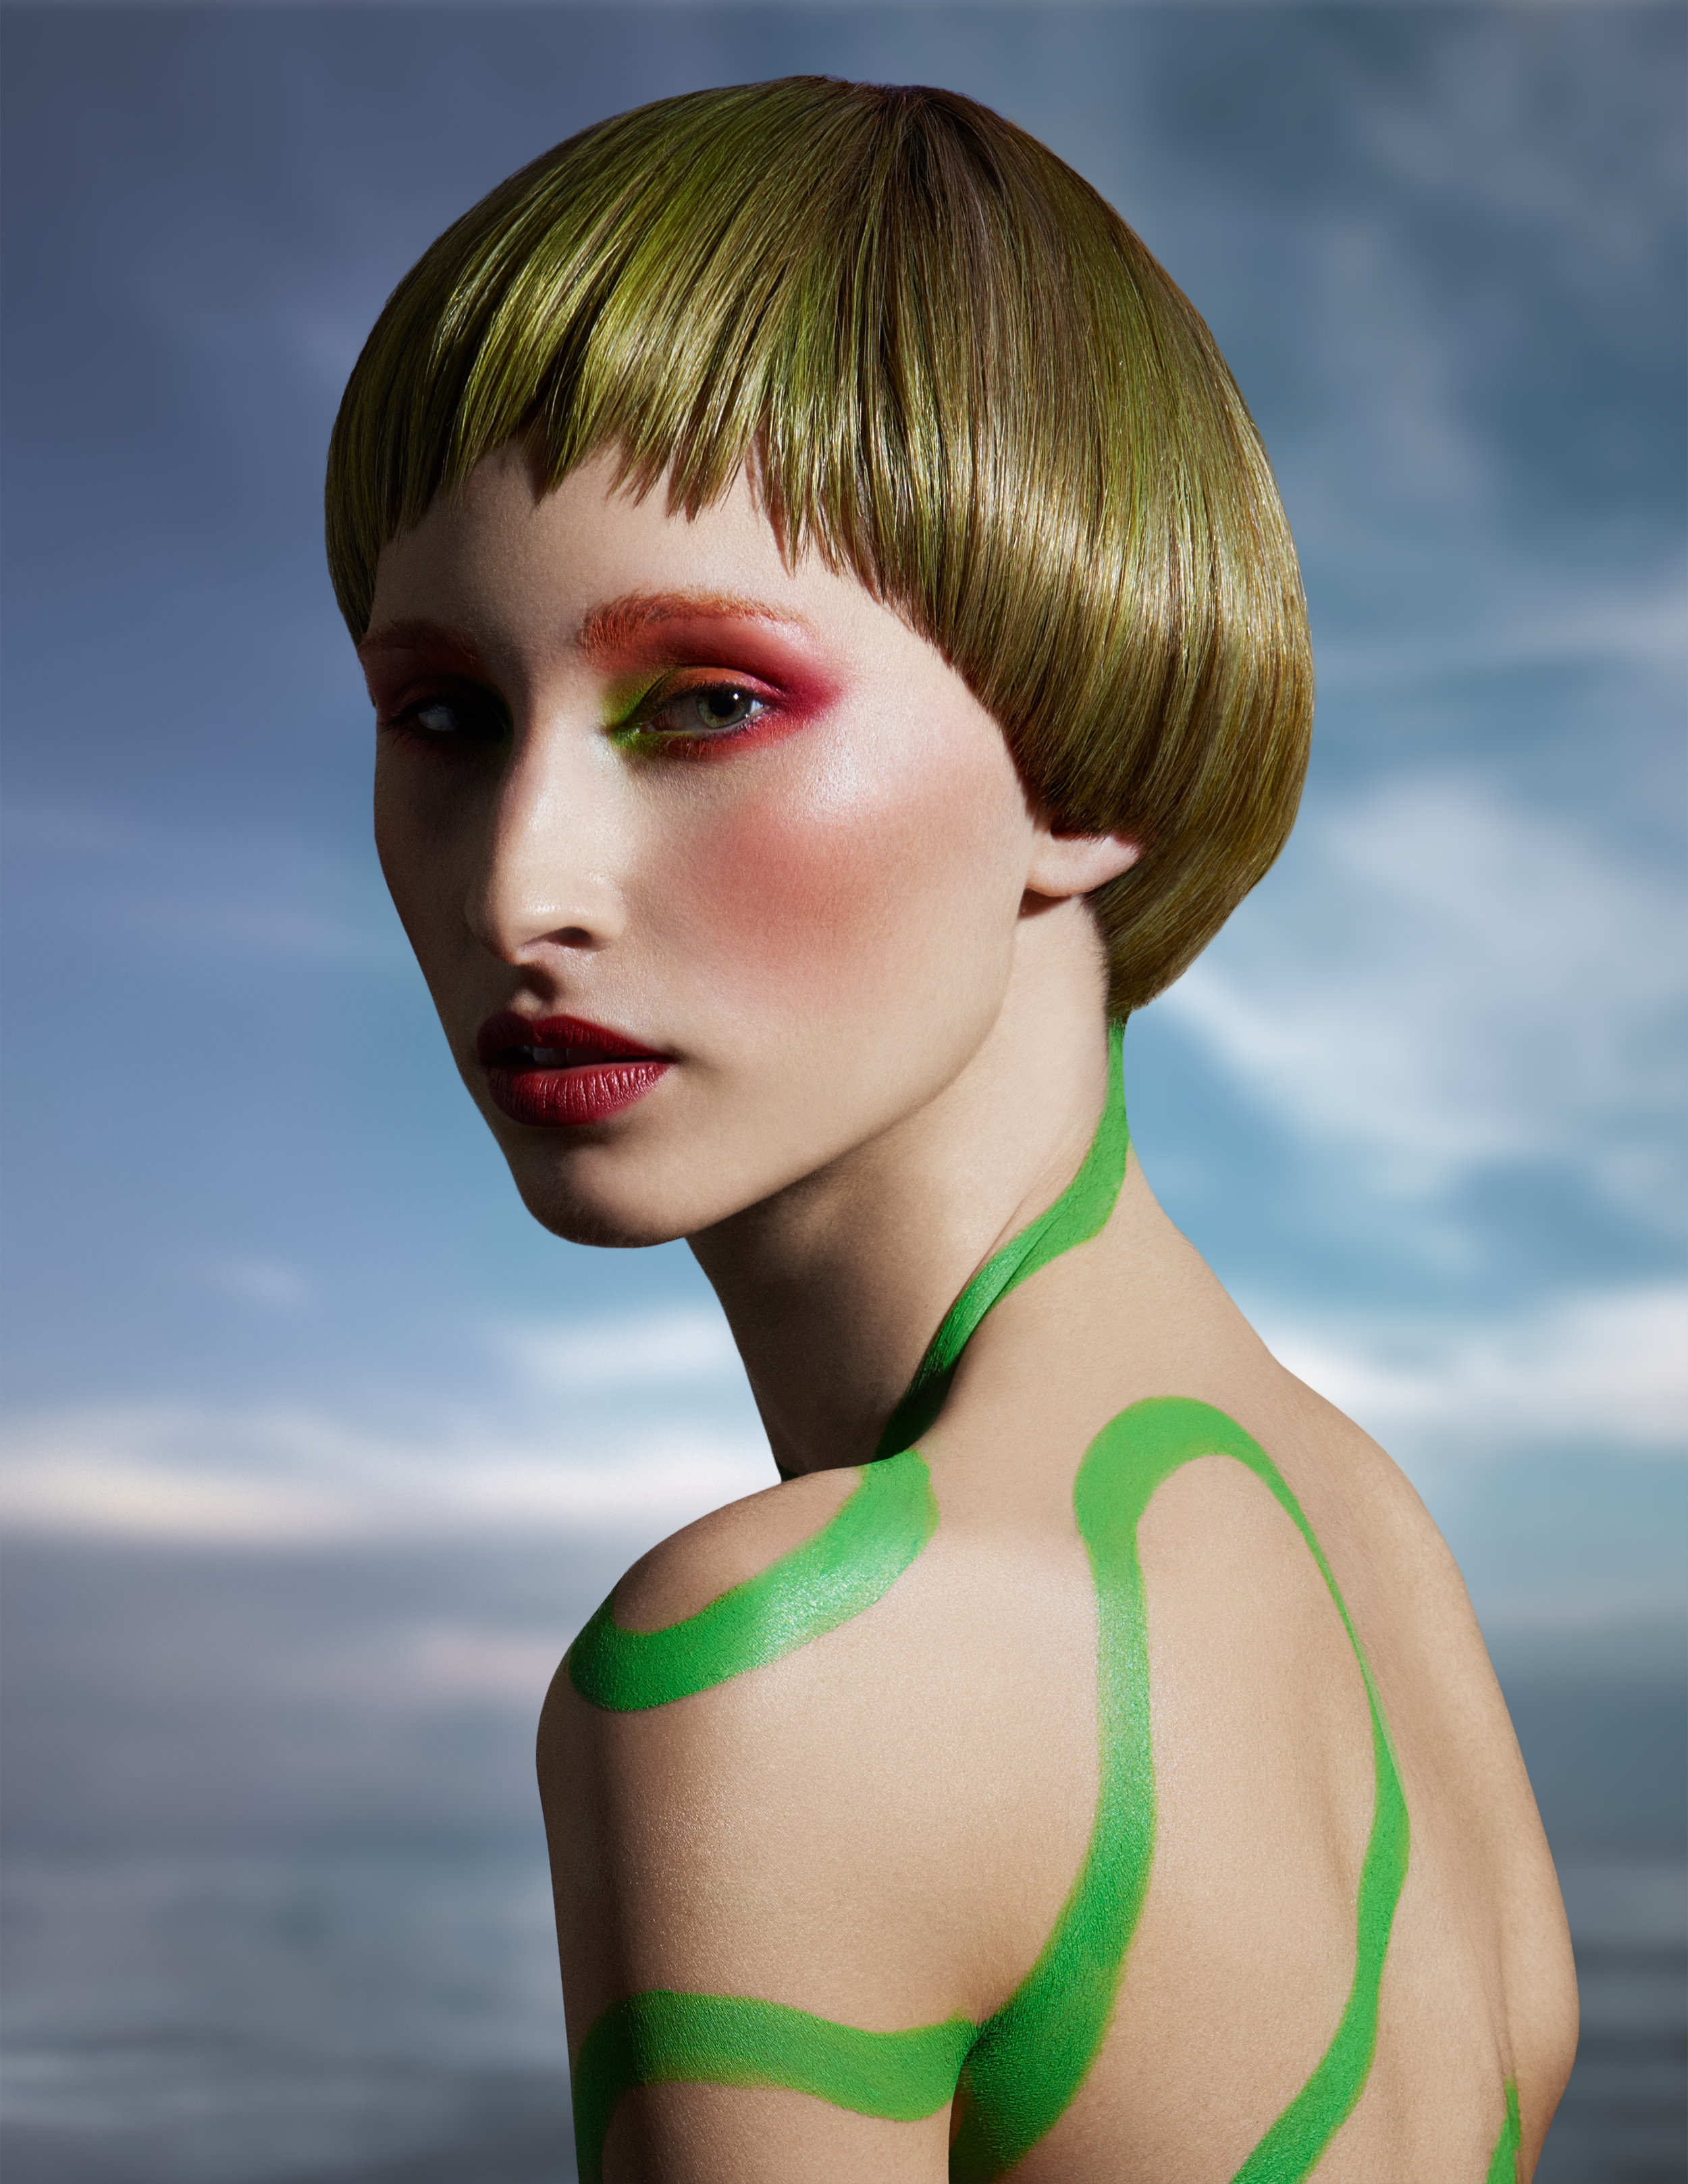 Color -  Lupe Voss  Art Direction -  Allen Ruiz  Cut -  Geno Chapman  Make-Up -  Anastasia Durasova  Photo -  Manuel Voss